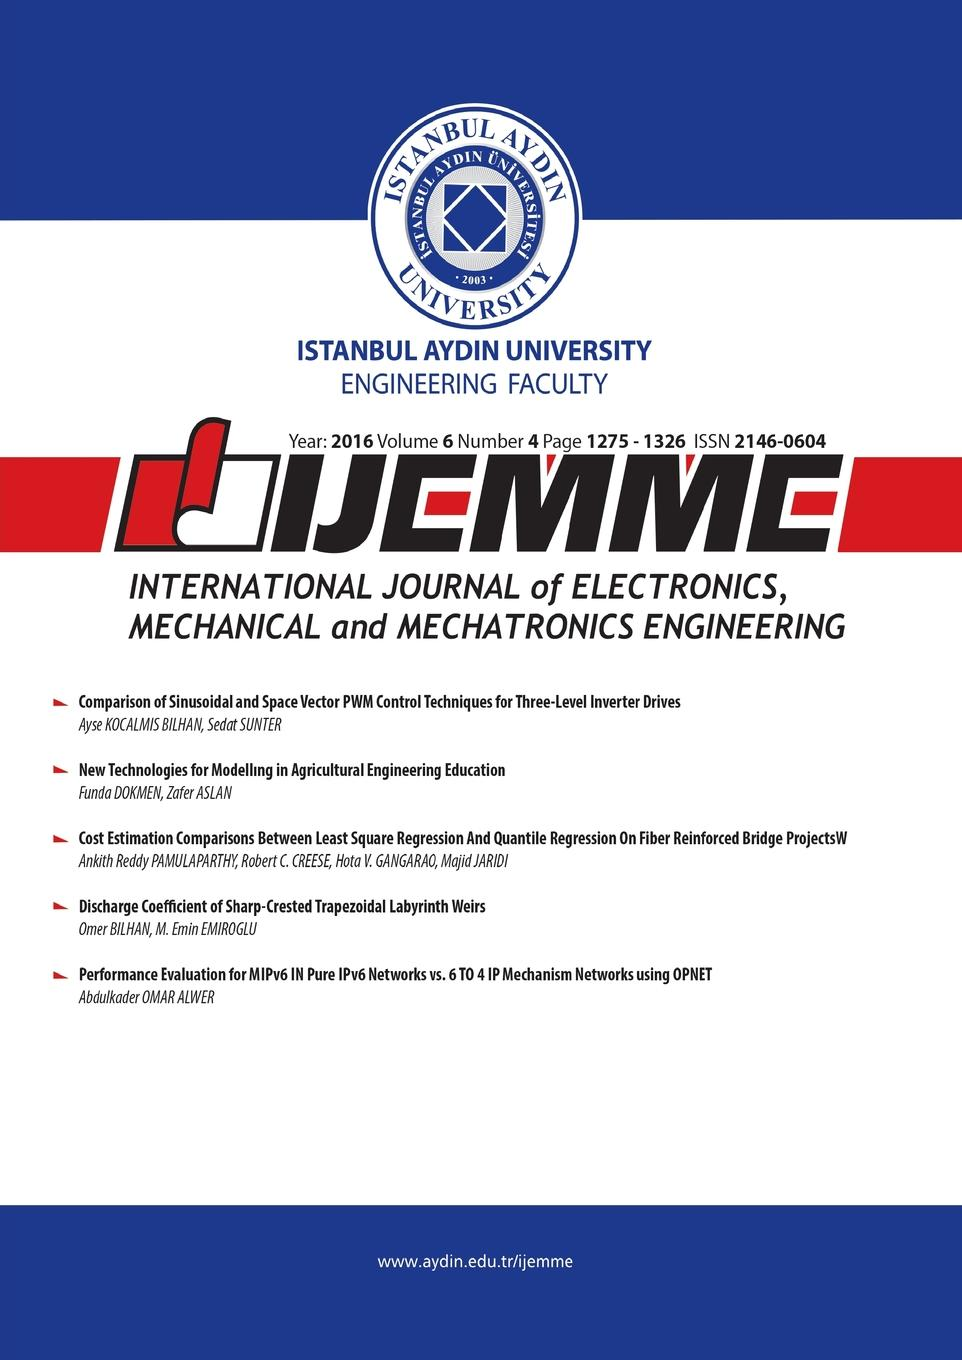 IJEMME. International Journal of Electronics, Mechanical and Mechatronics Engineering habib m k interdisciplinary mechatronics engineering science and research development